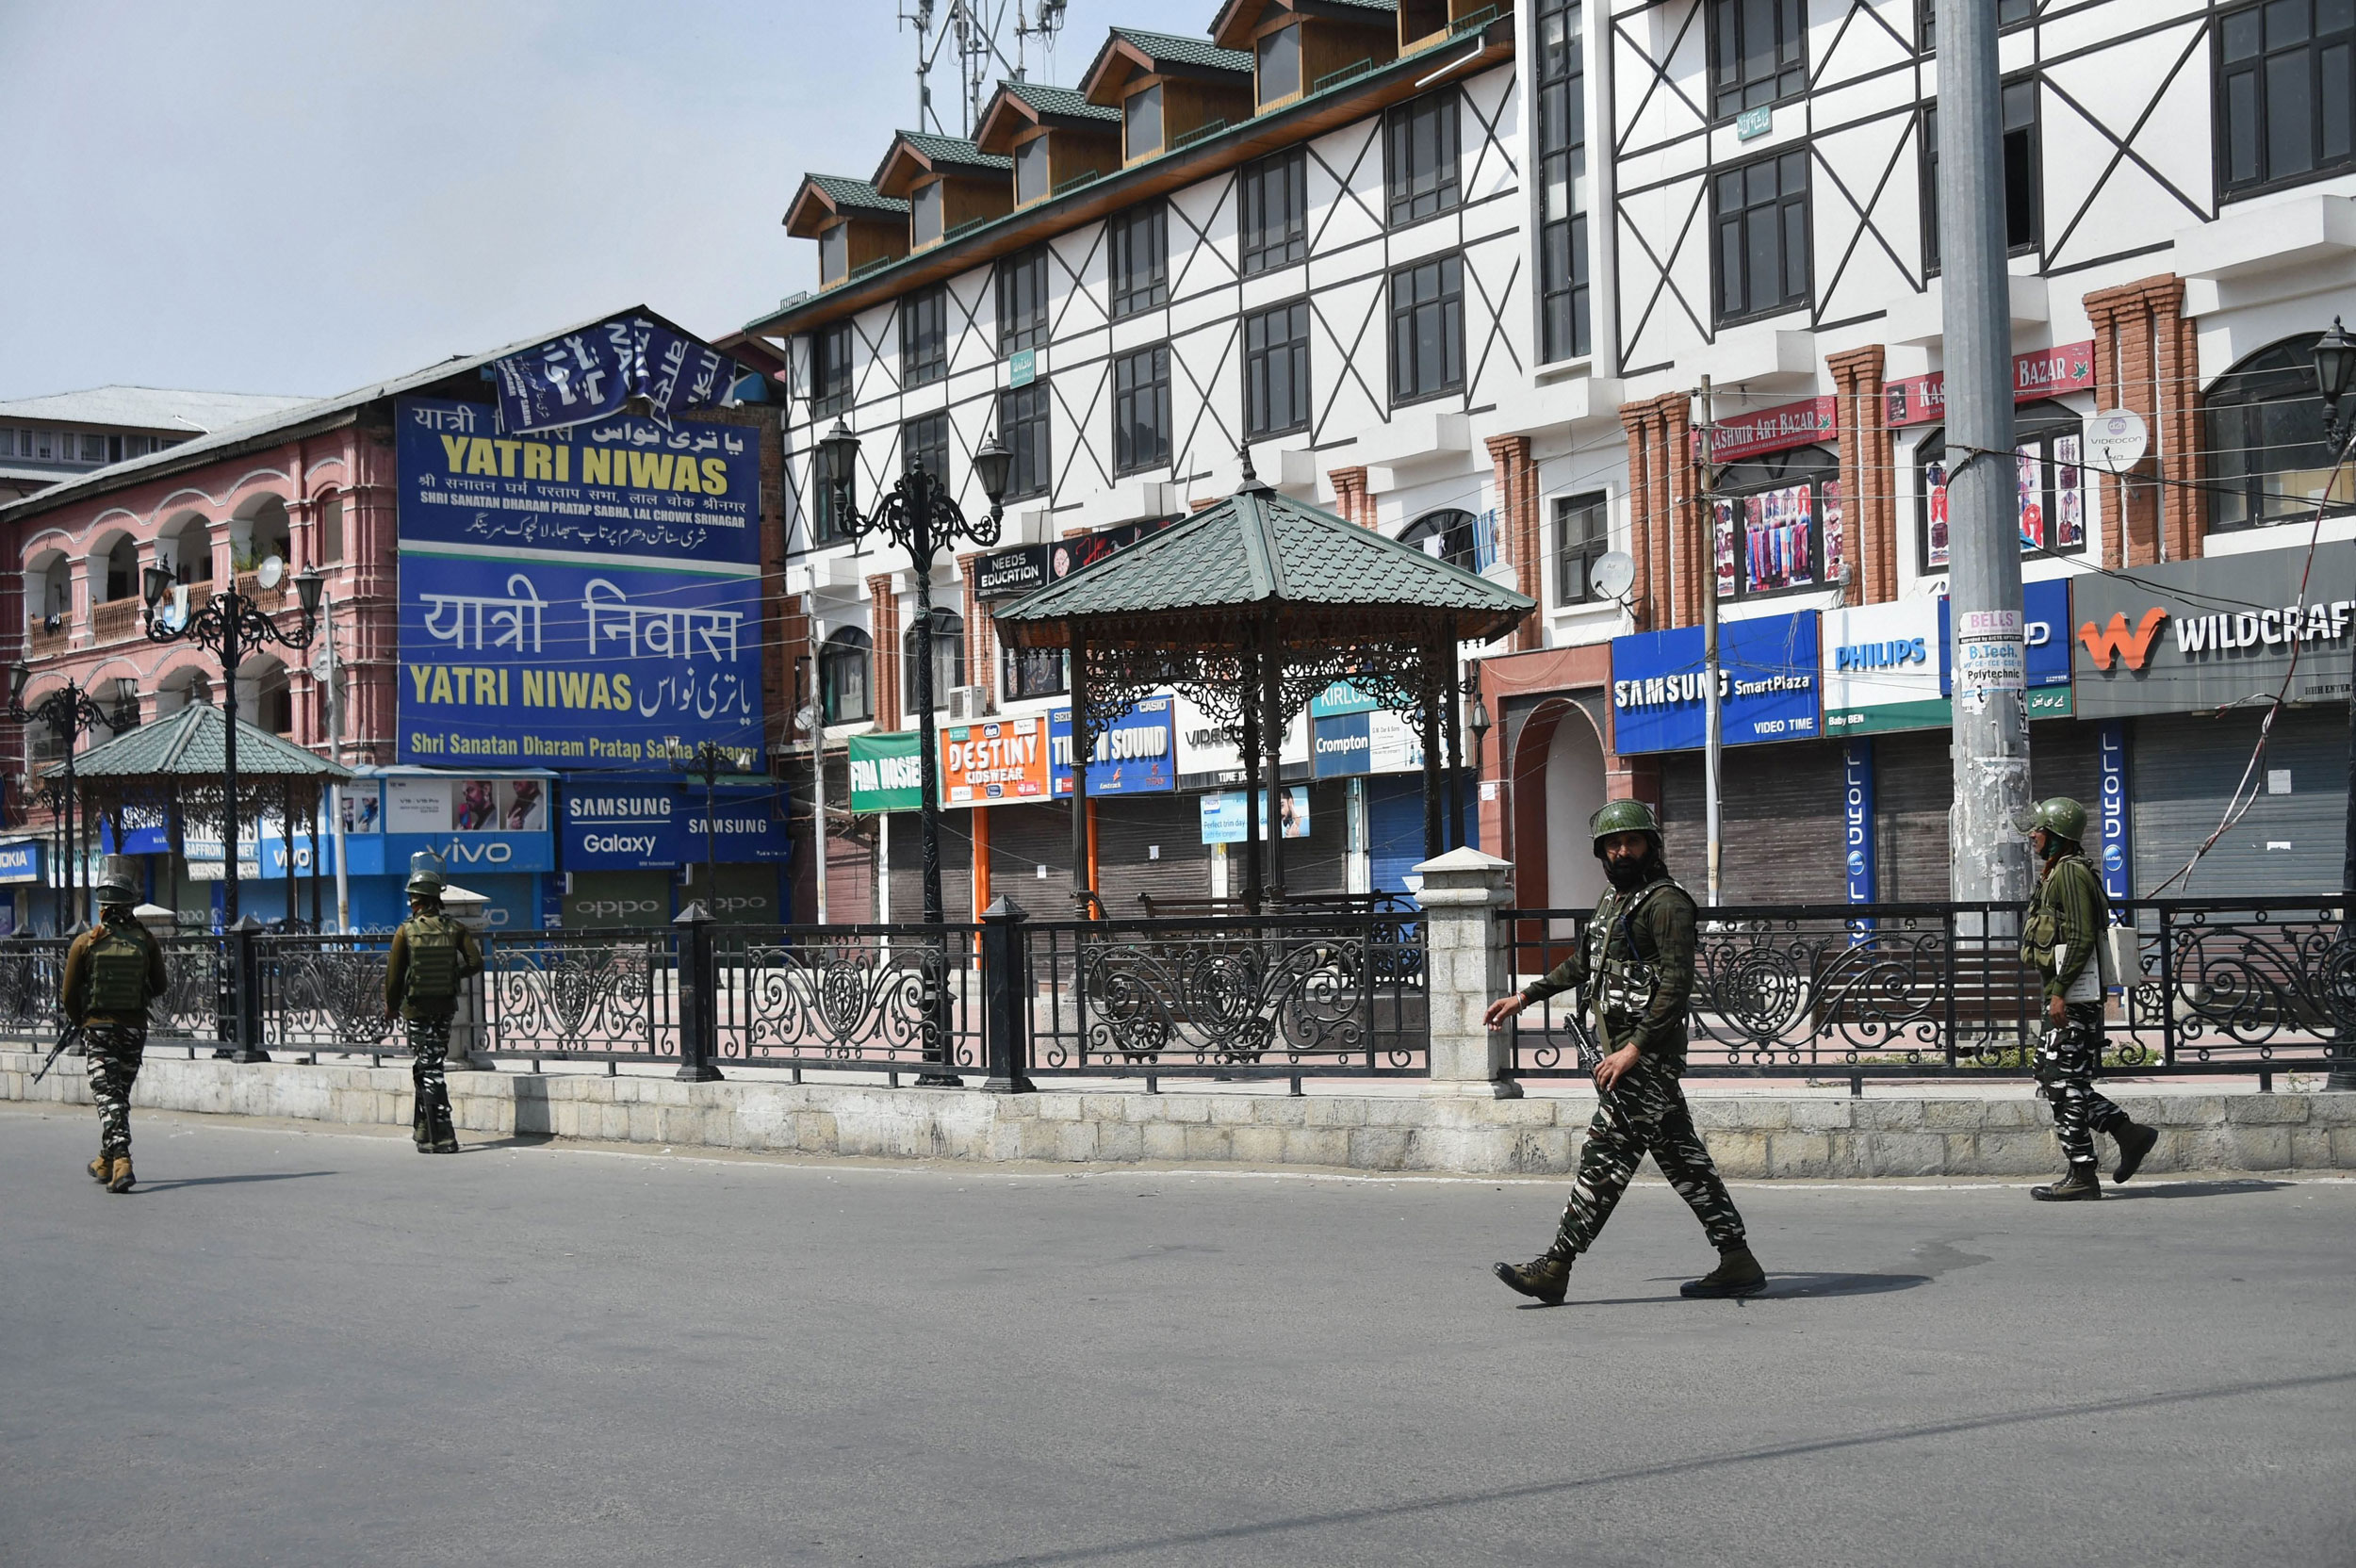 Security personnel patrol a street during restrictions and shutdown at Lal Chowk in Srinagar on September 20, 2019. Kashmir has seen umpteen shutdowns and Internet blockades over the past 30 years but never one that has stretched so long.